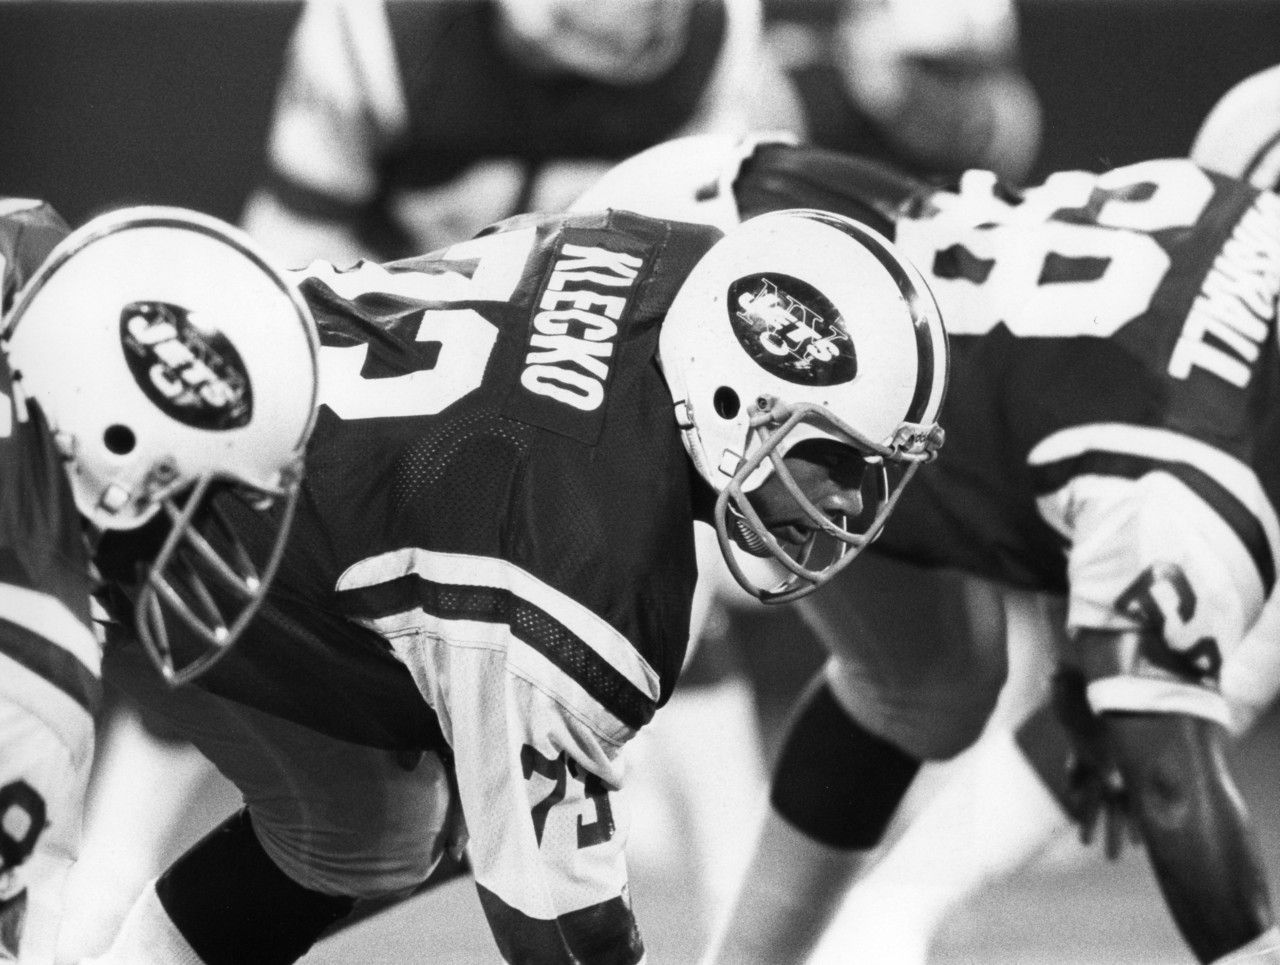 Joe klecko new york jets for the love of the game